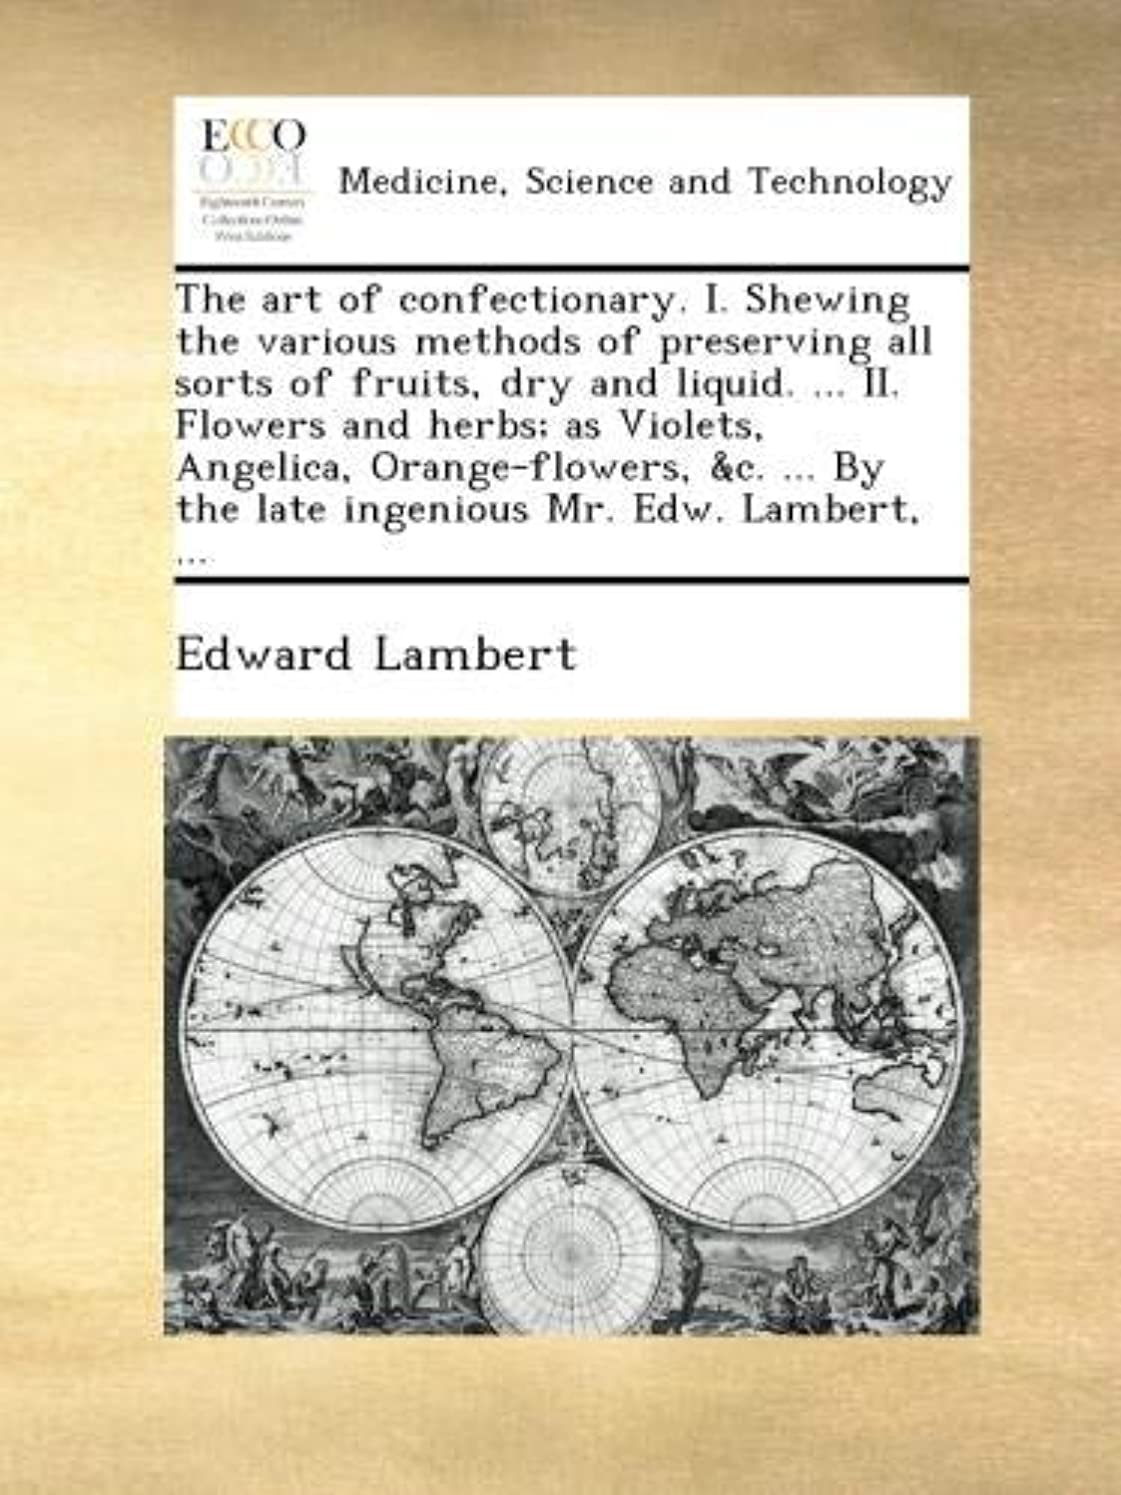 ケント通り囚人The art of confectionary. I. Shewing the various methods of preserving all sorts of fruits, dry and liquid. ... II. Flowers and herbs; as Violets, Angelica, Orange-flowers, &c. ... By the late ingenious Mr. Edw. Lambert, ...